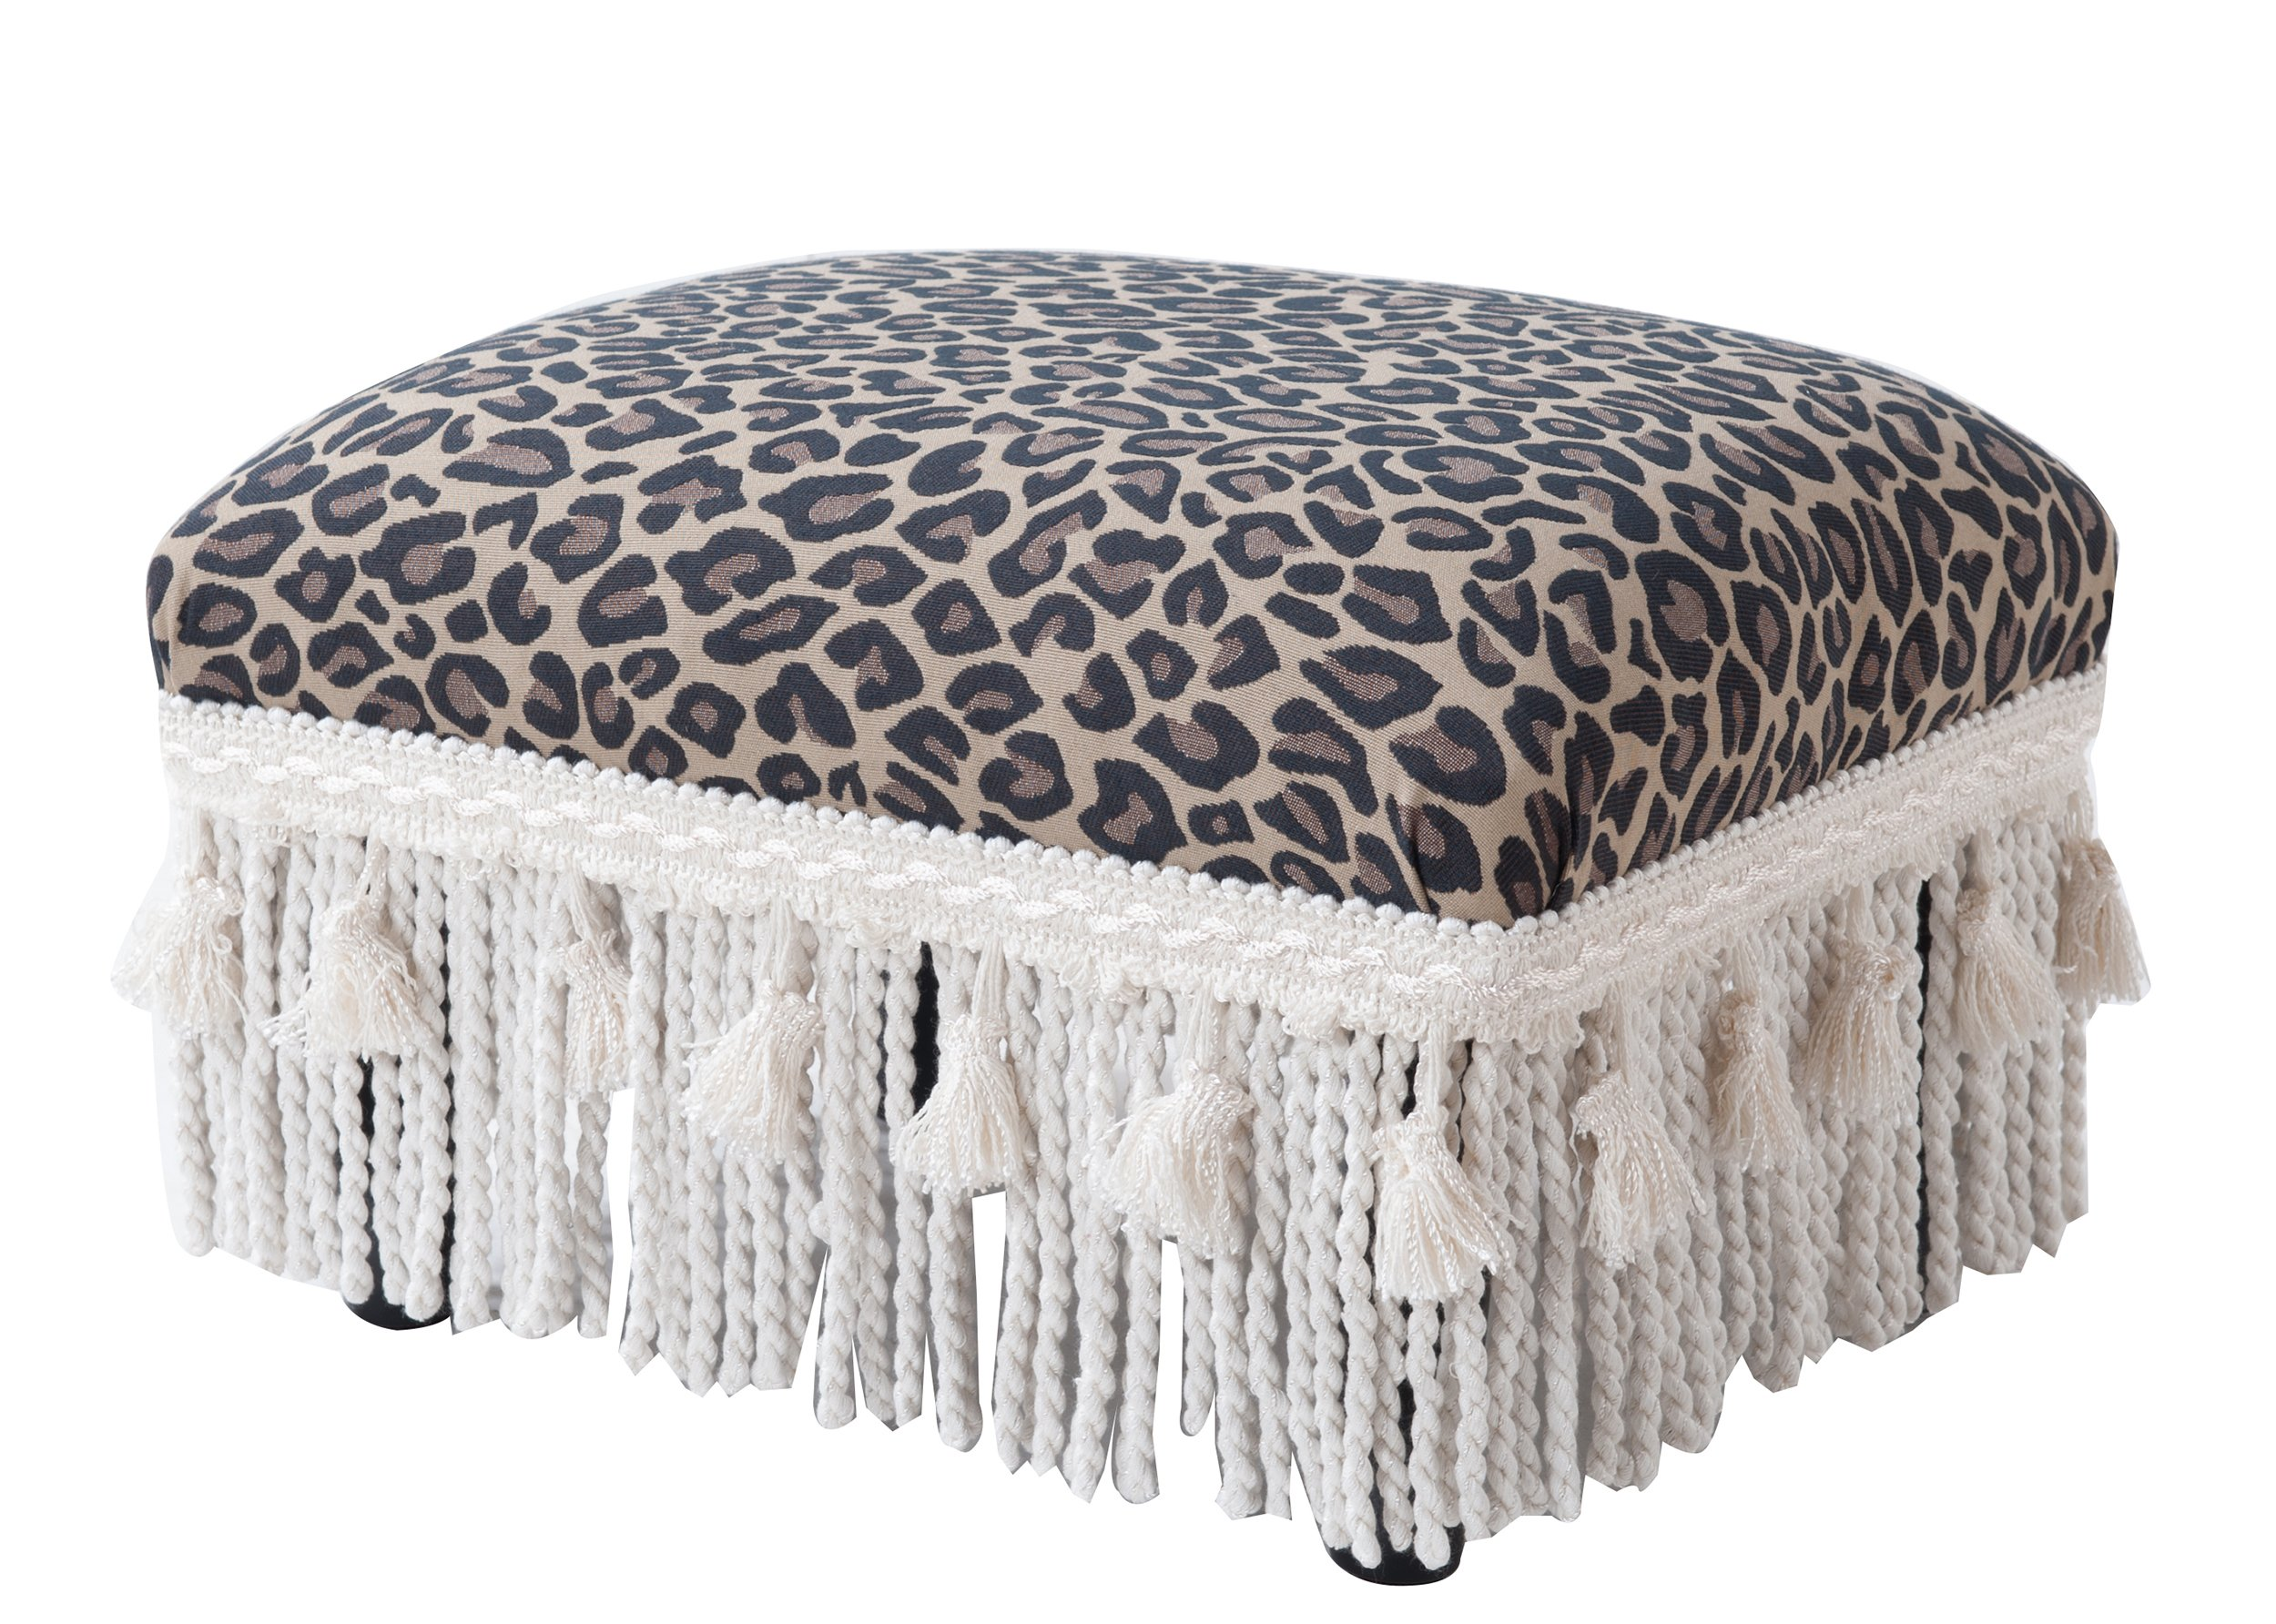 Jennifer Taylor Home 2318-655 Decorative Fiona Collection Traditional Upholstered Rayon Blend Footstool with Fringe and Trim Tassels, Multi-Colored, Brown/Beige by Jennifer Taylor Home (Image #3)